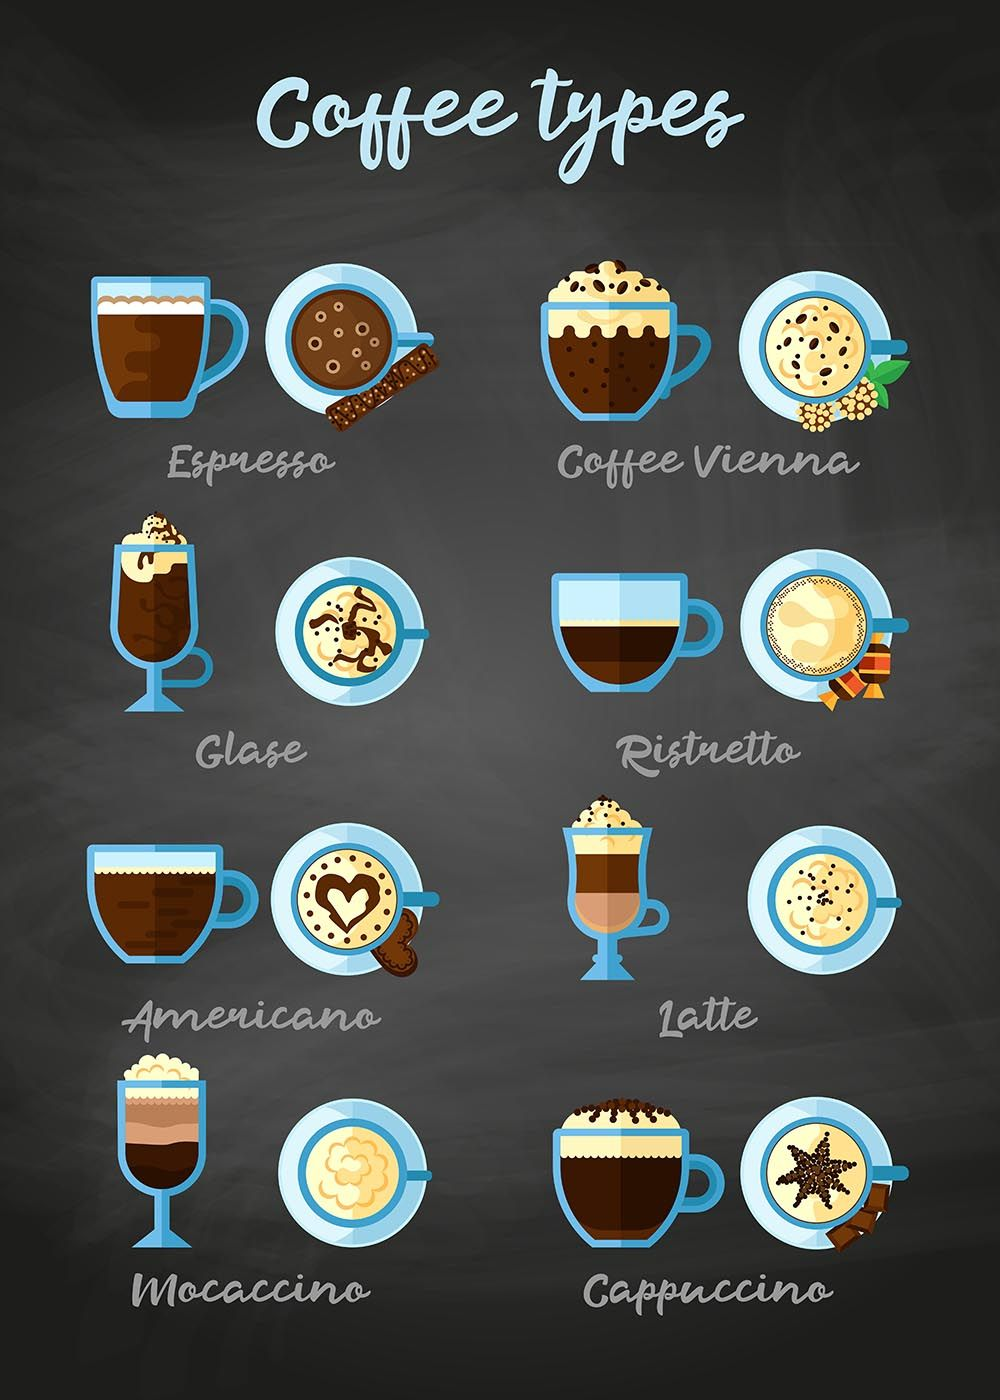 'Coffee types' Metal Poster Moon Calendar Studio